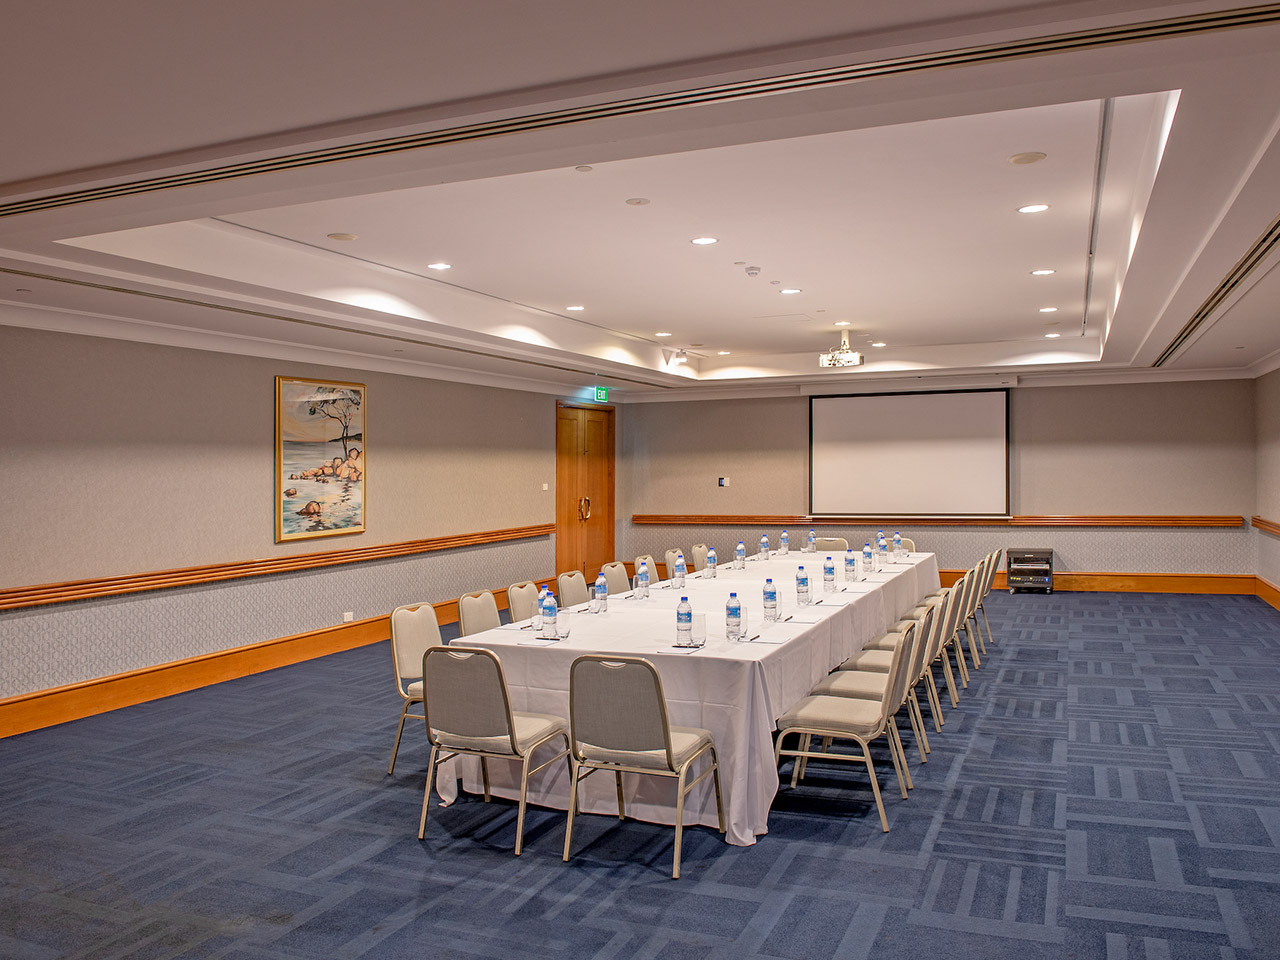 Chairs And A Long Table With Wall Painting, Bottled Water And A Projection Screen Inside The Function Room